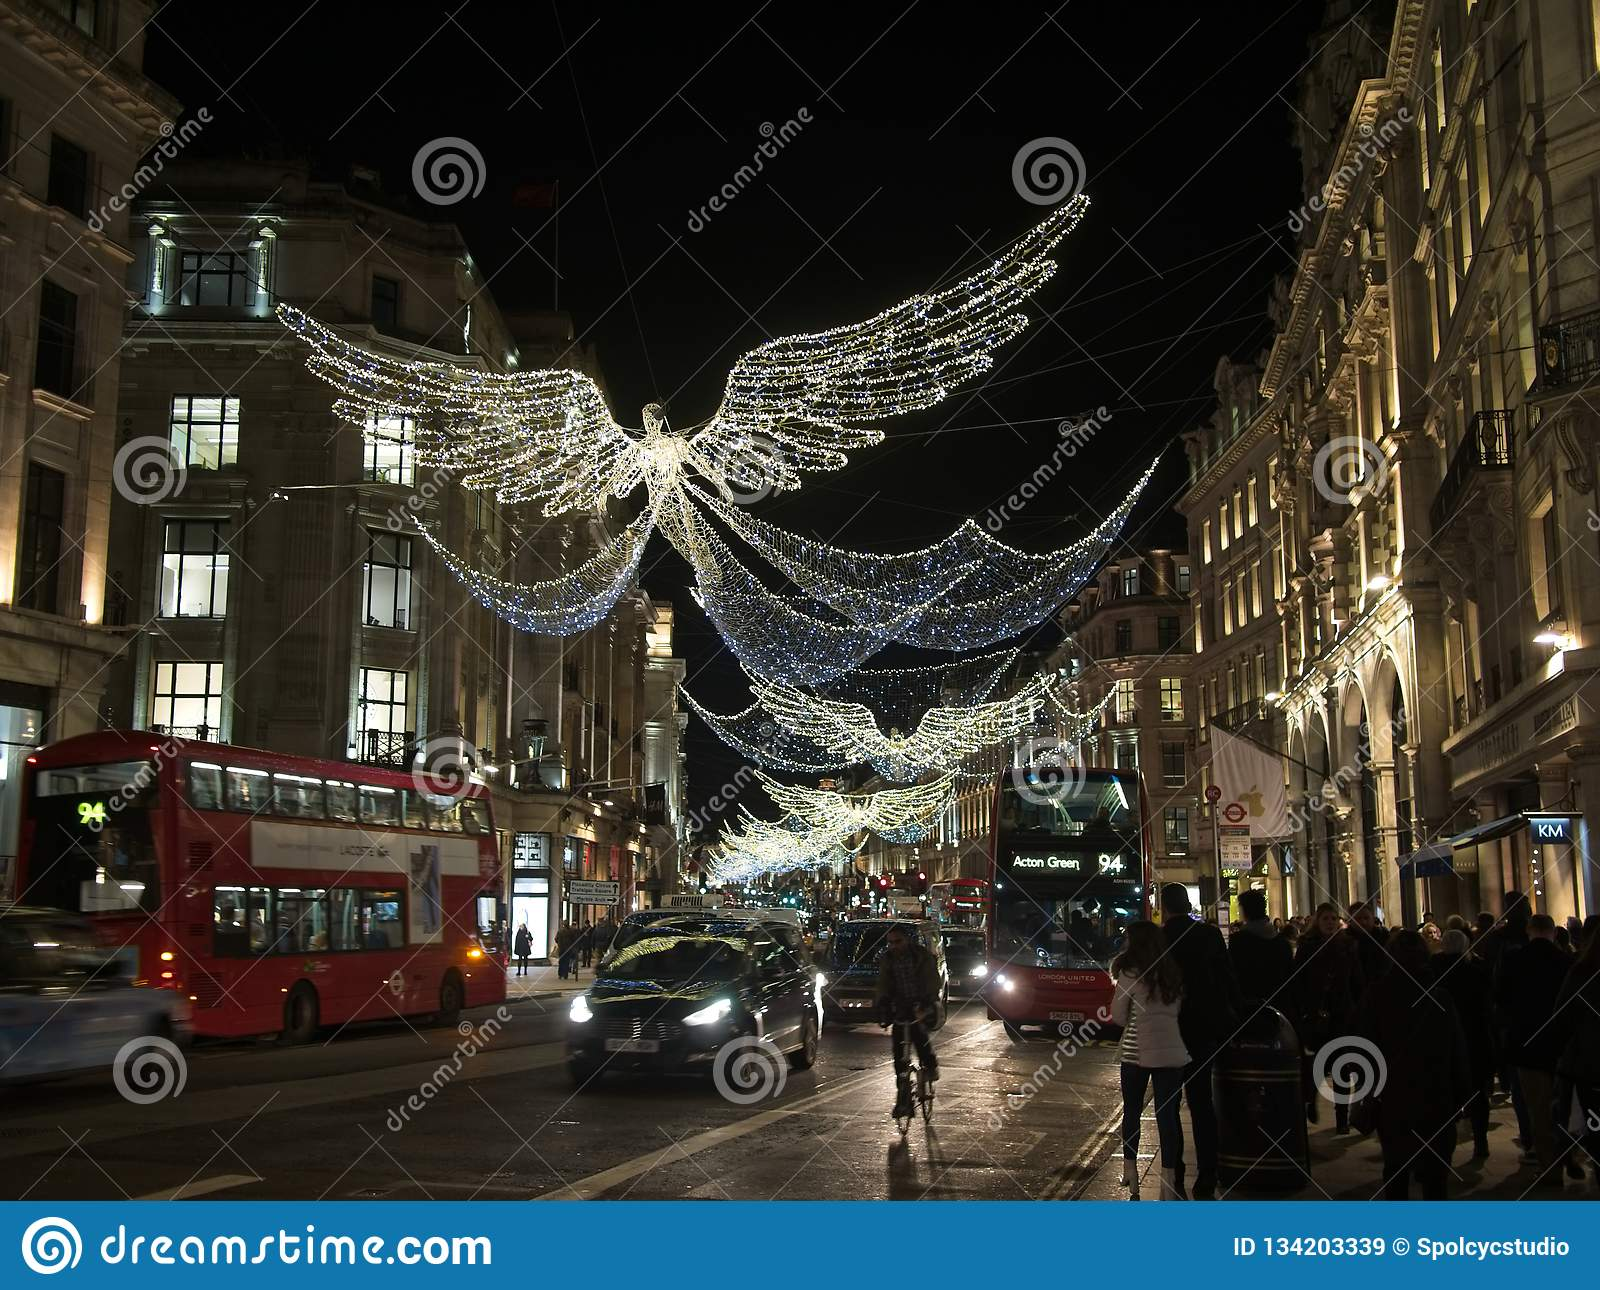 England Christmas Lights.Christmas Lights And Decoration On Regent Street In London